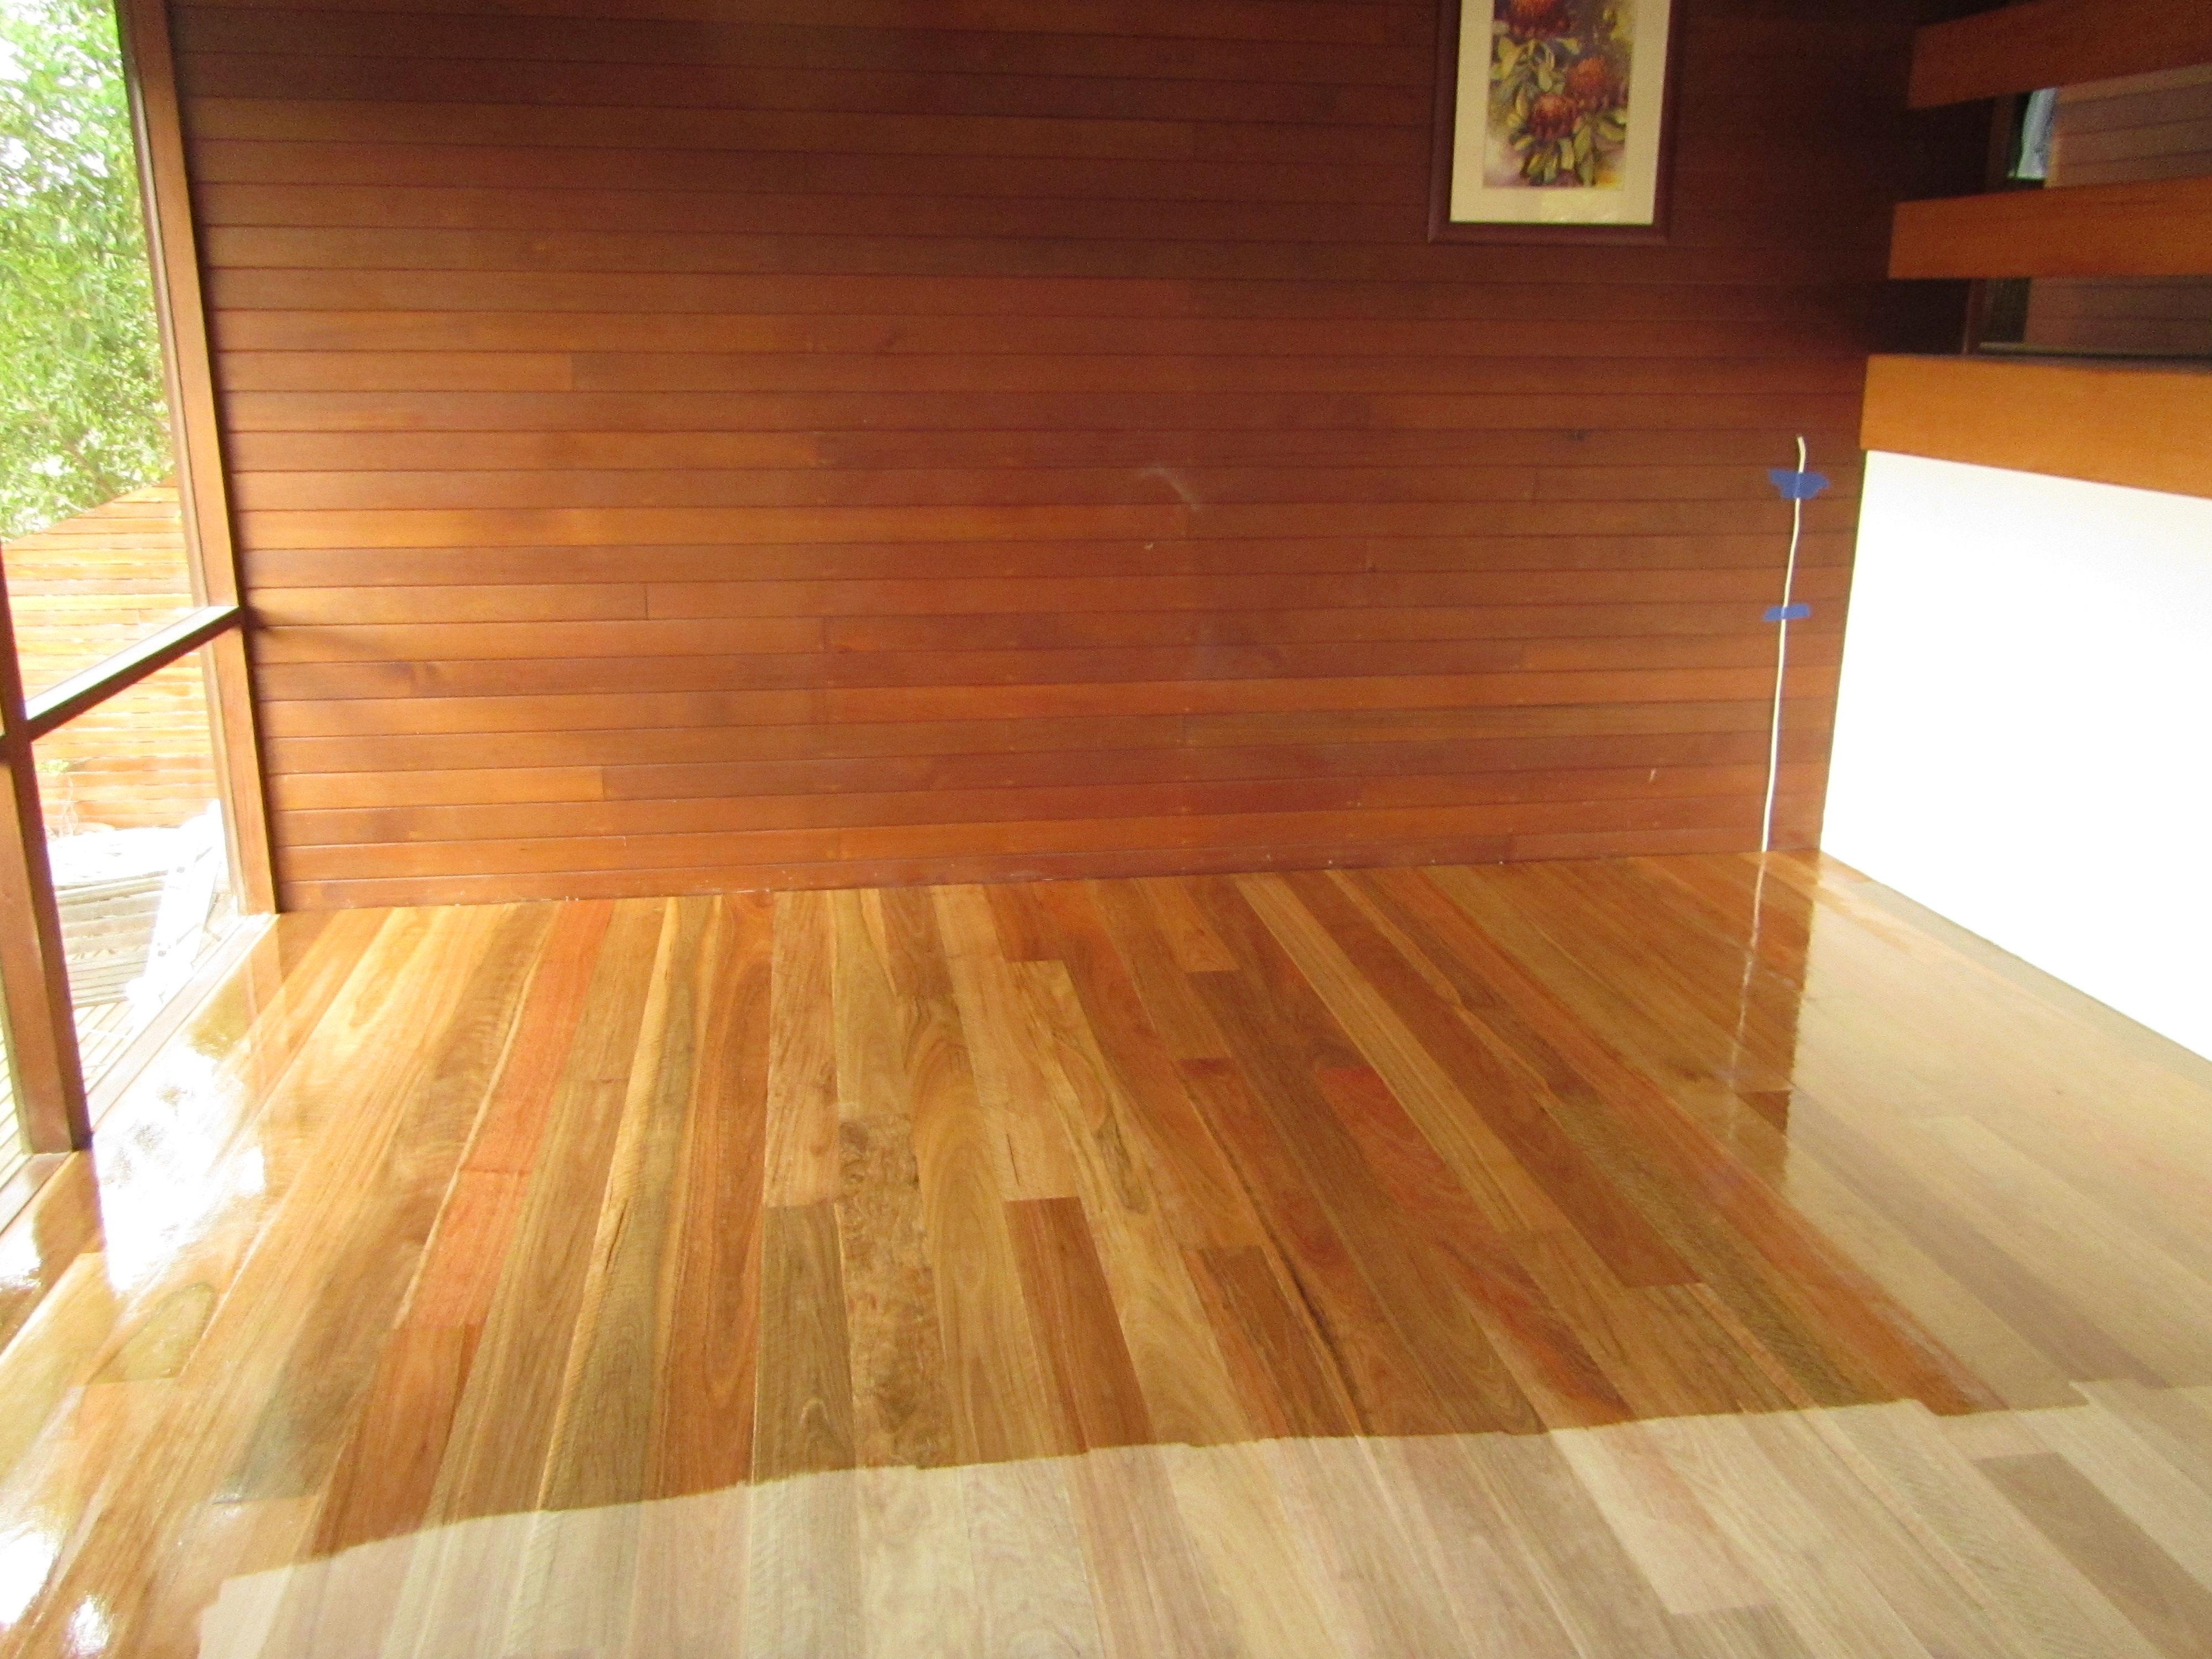 Tung Oil For Wood Floors4000 X 3000